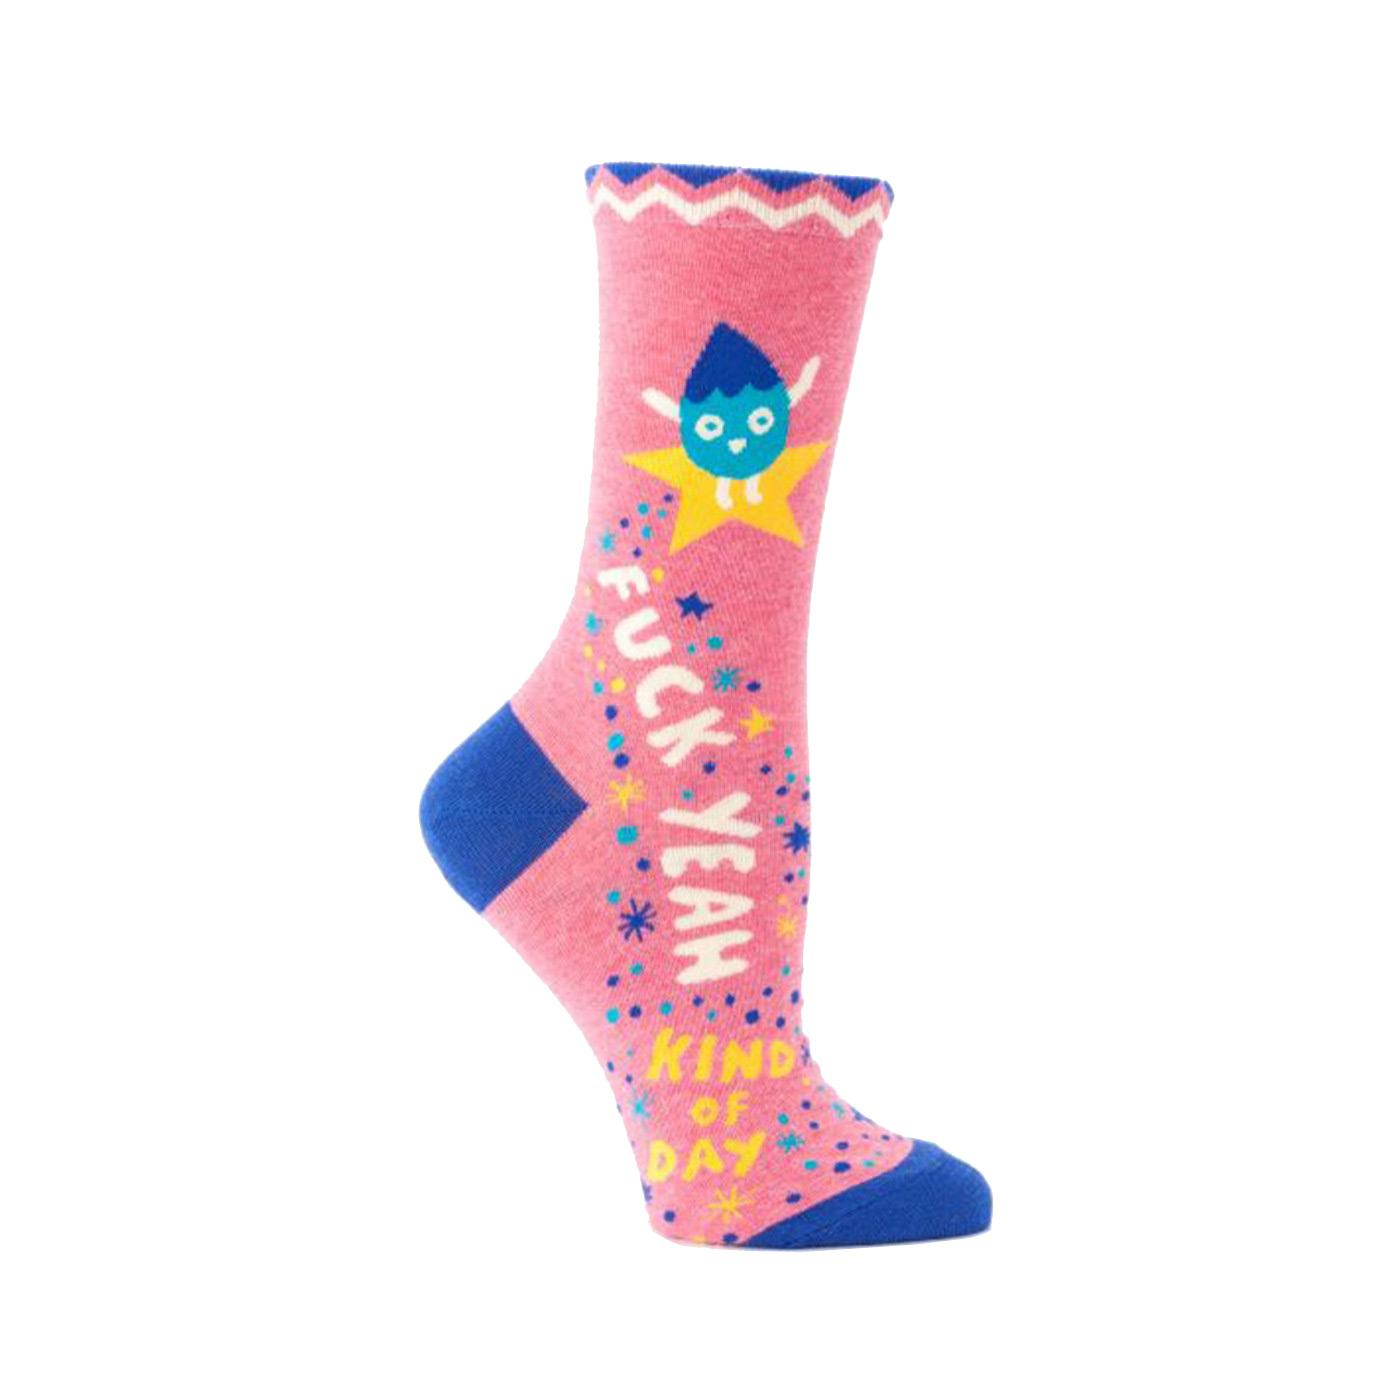 Blue Q Sock Fuck Yeah Kind of Day Women's Crew Right Side